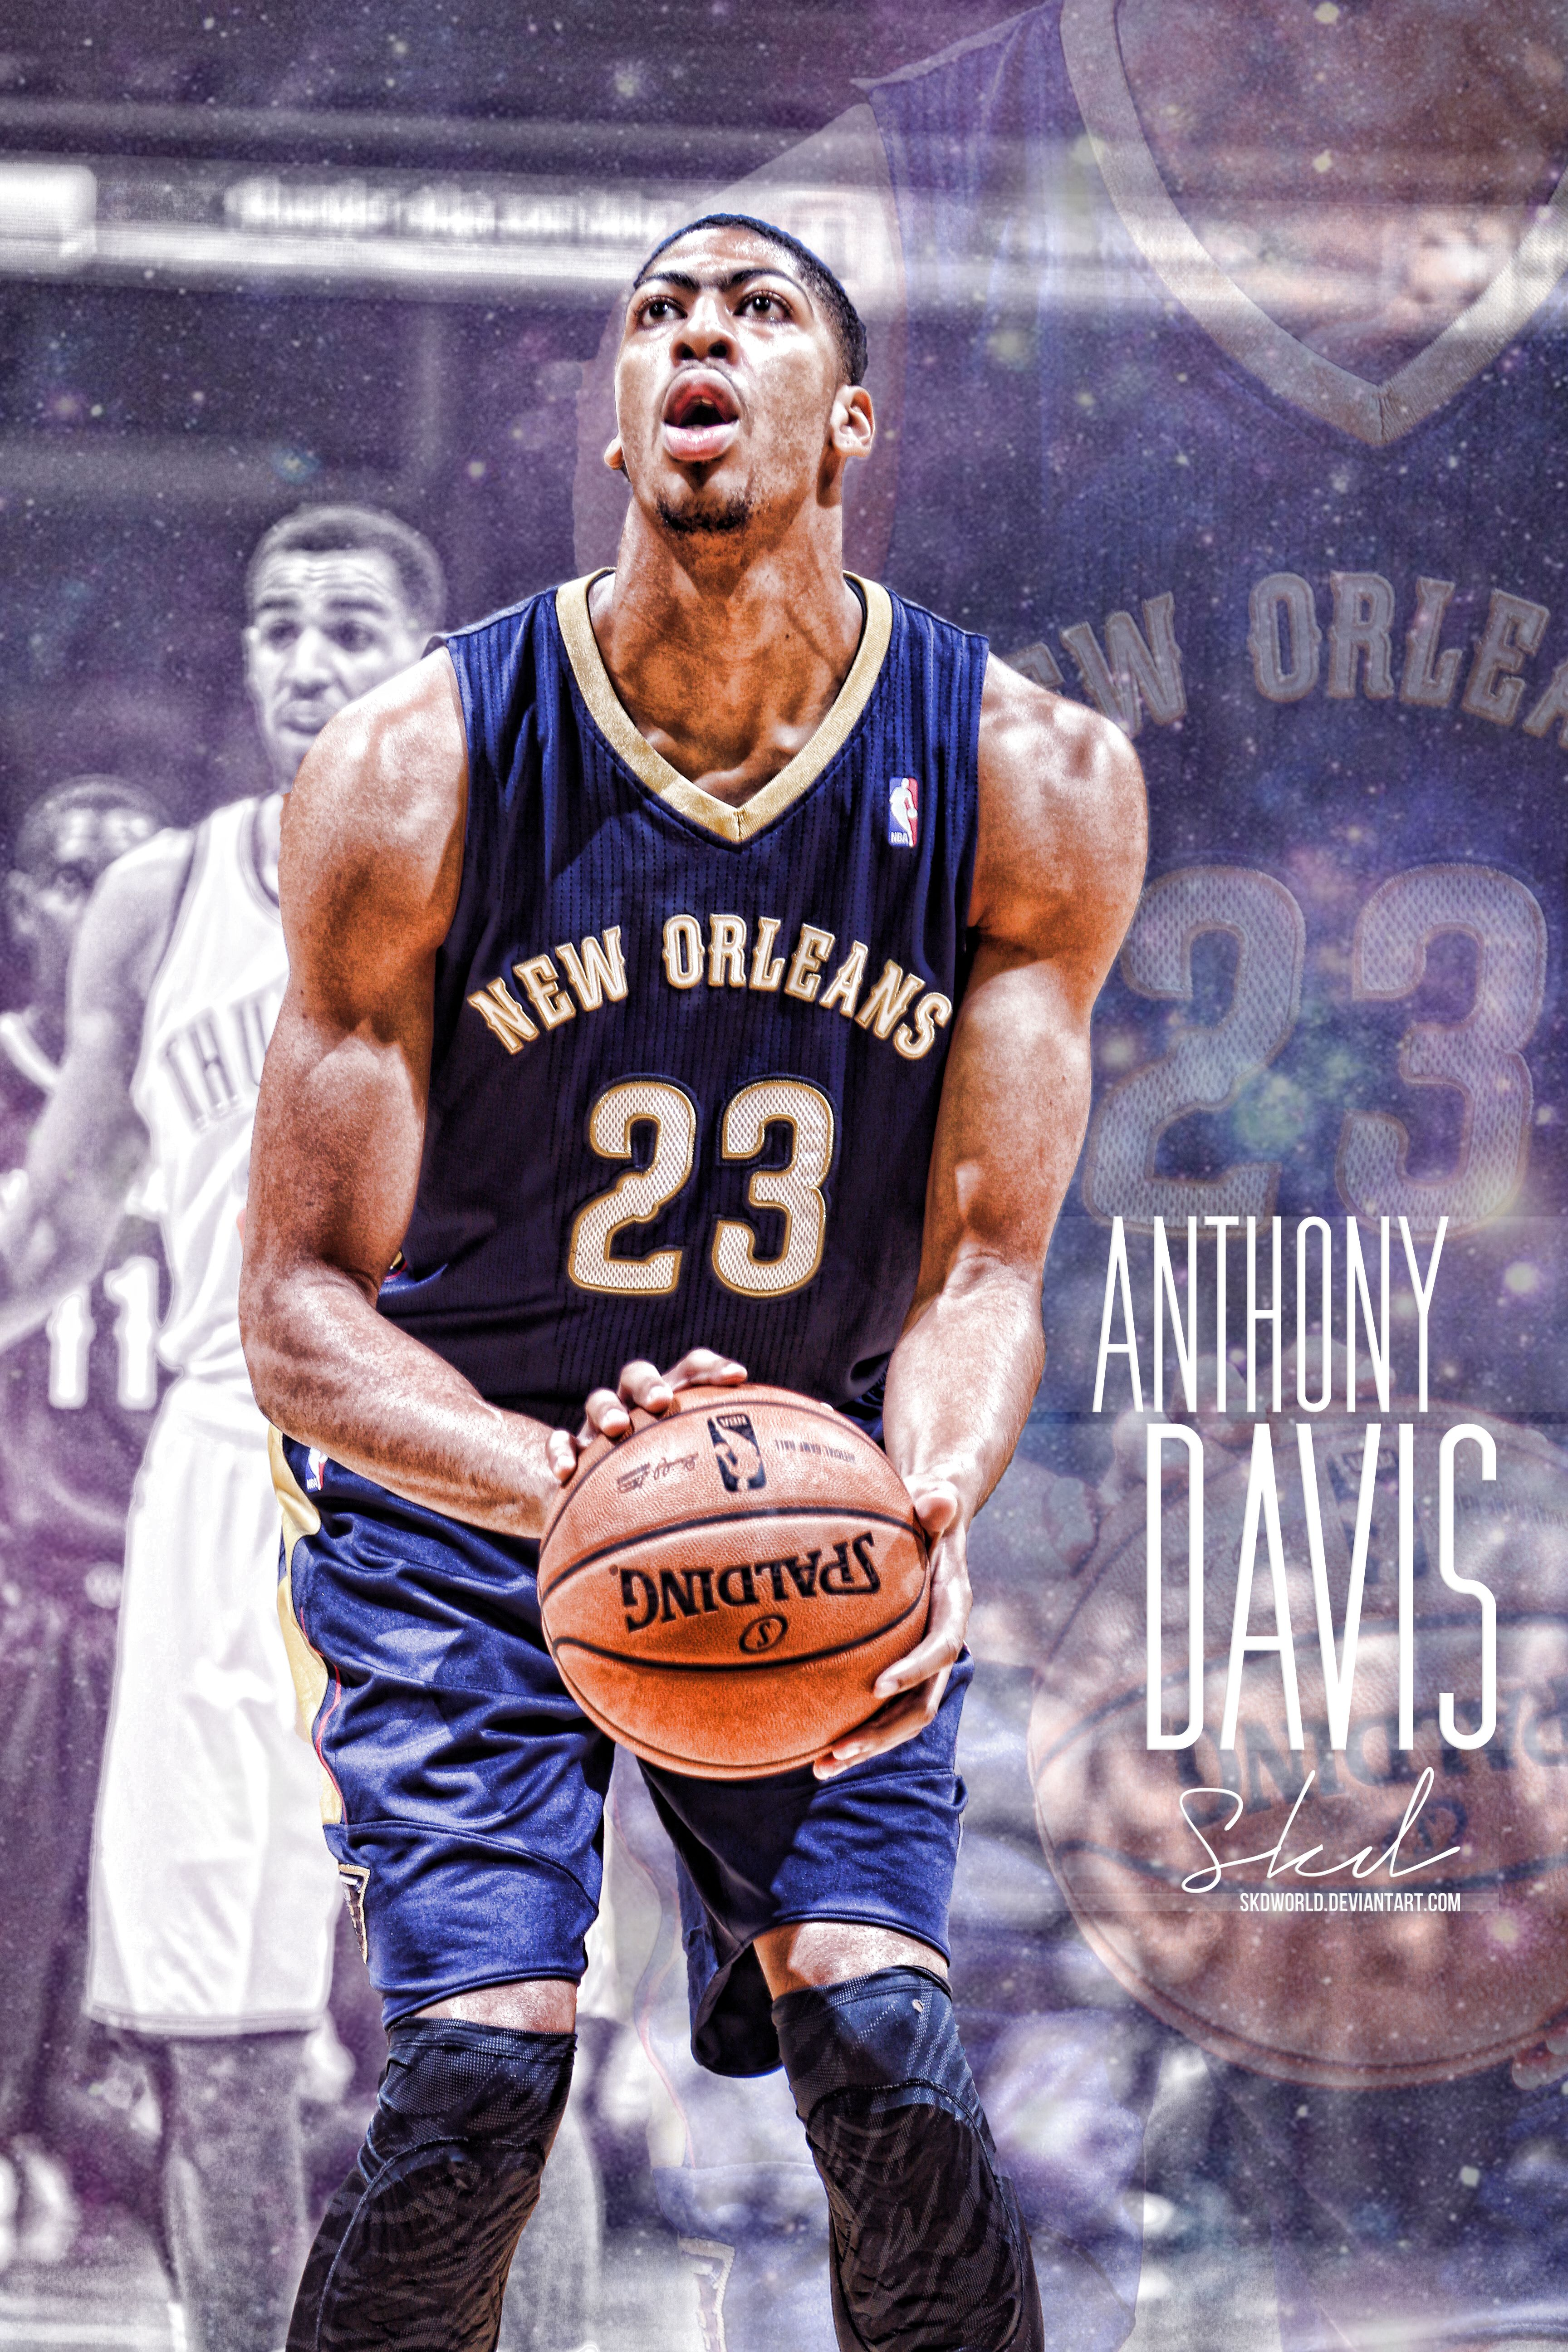 Anthony Davis Wallpapers Wallpaper Cave Anthony Davis Anthony Davis